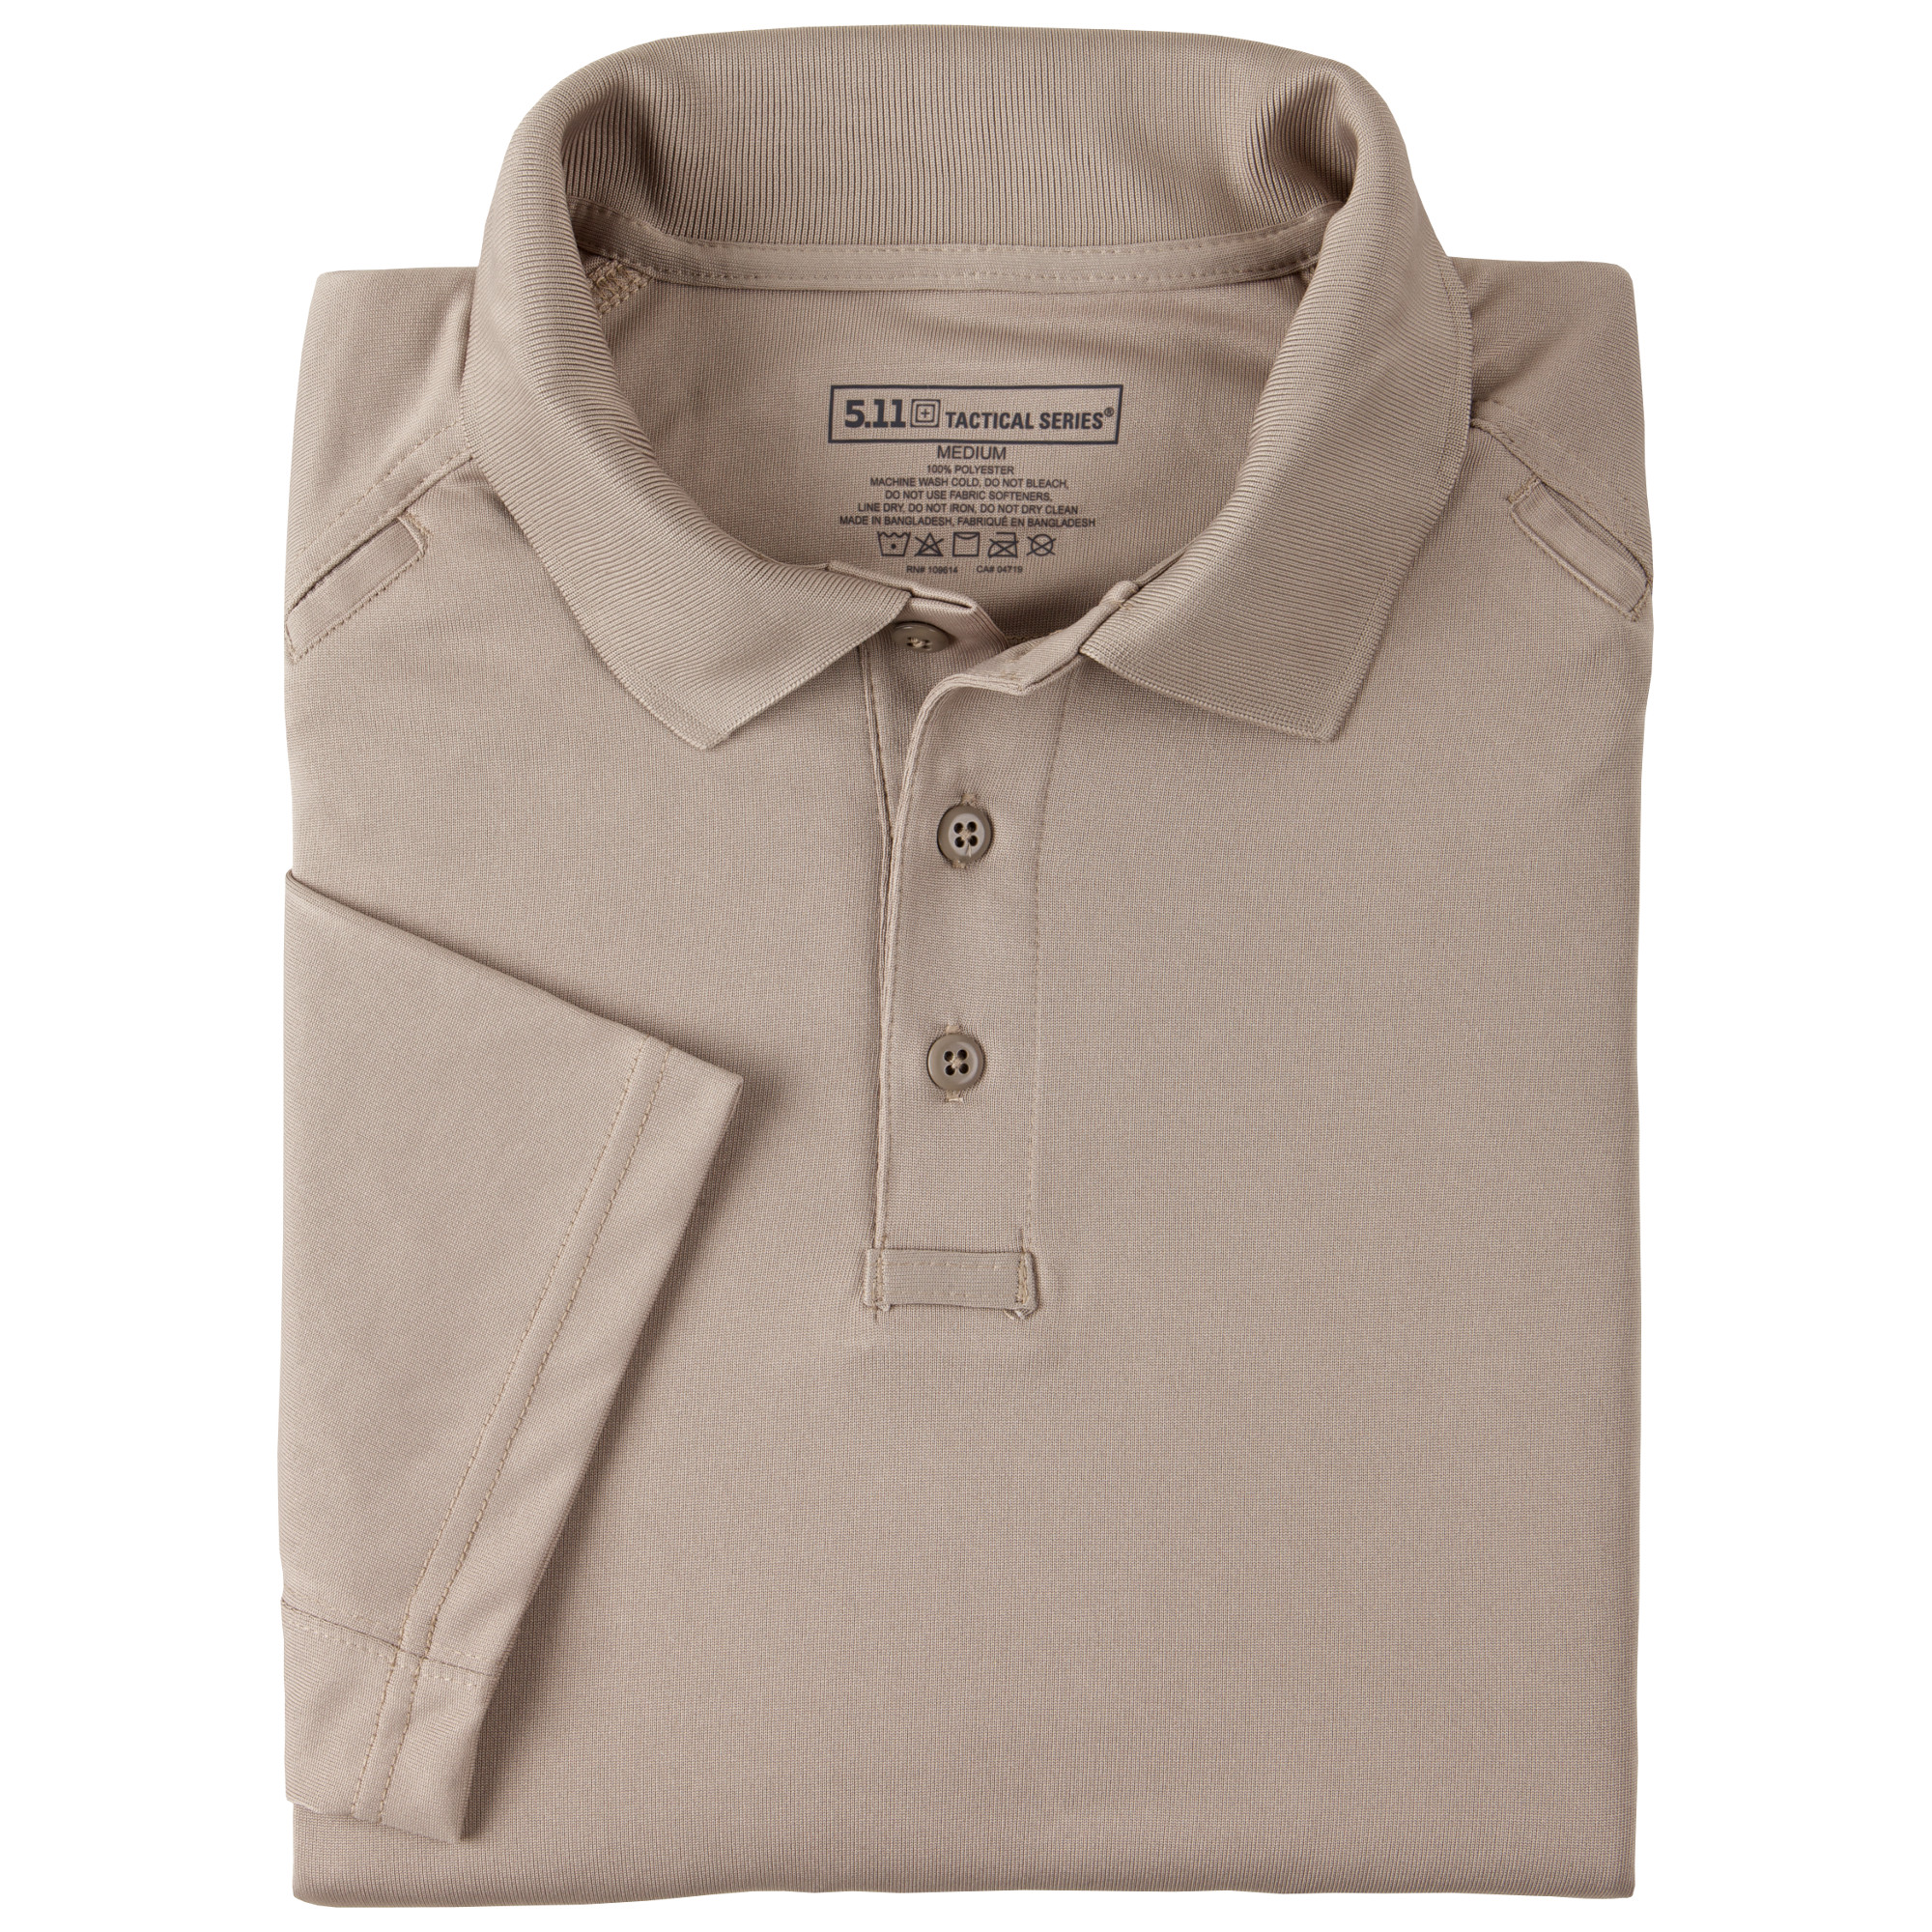 PERFORMANCE S/S POLO PERFORMANCE S/S POLO TALL